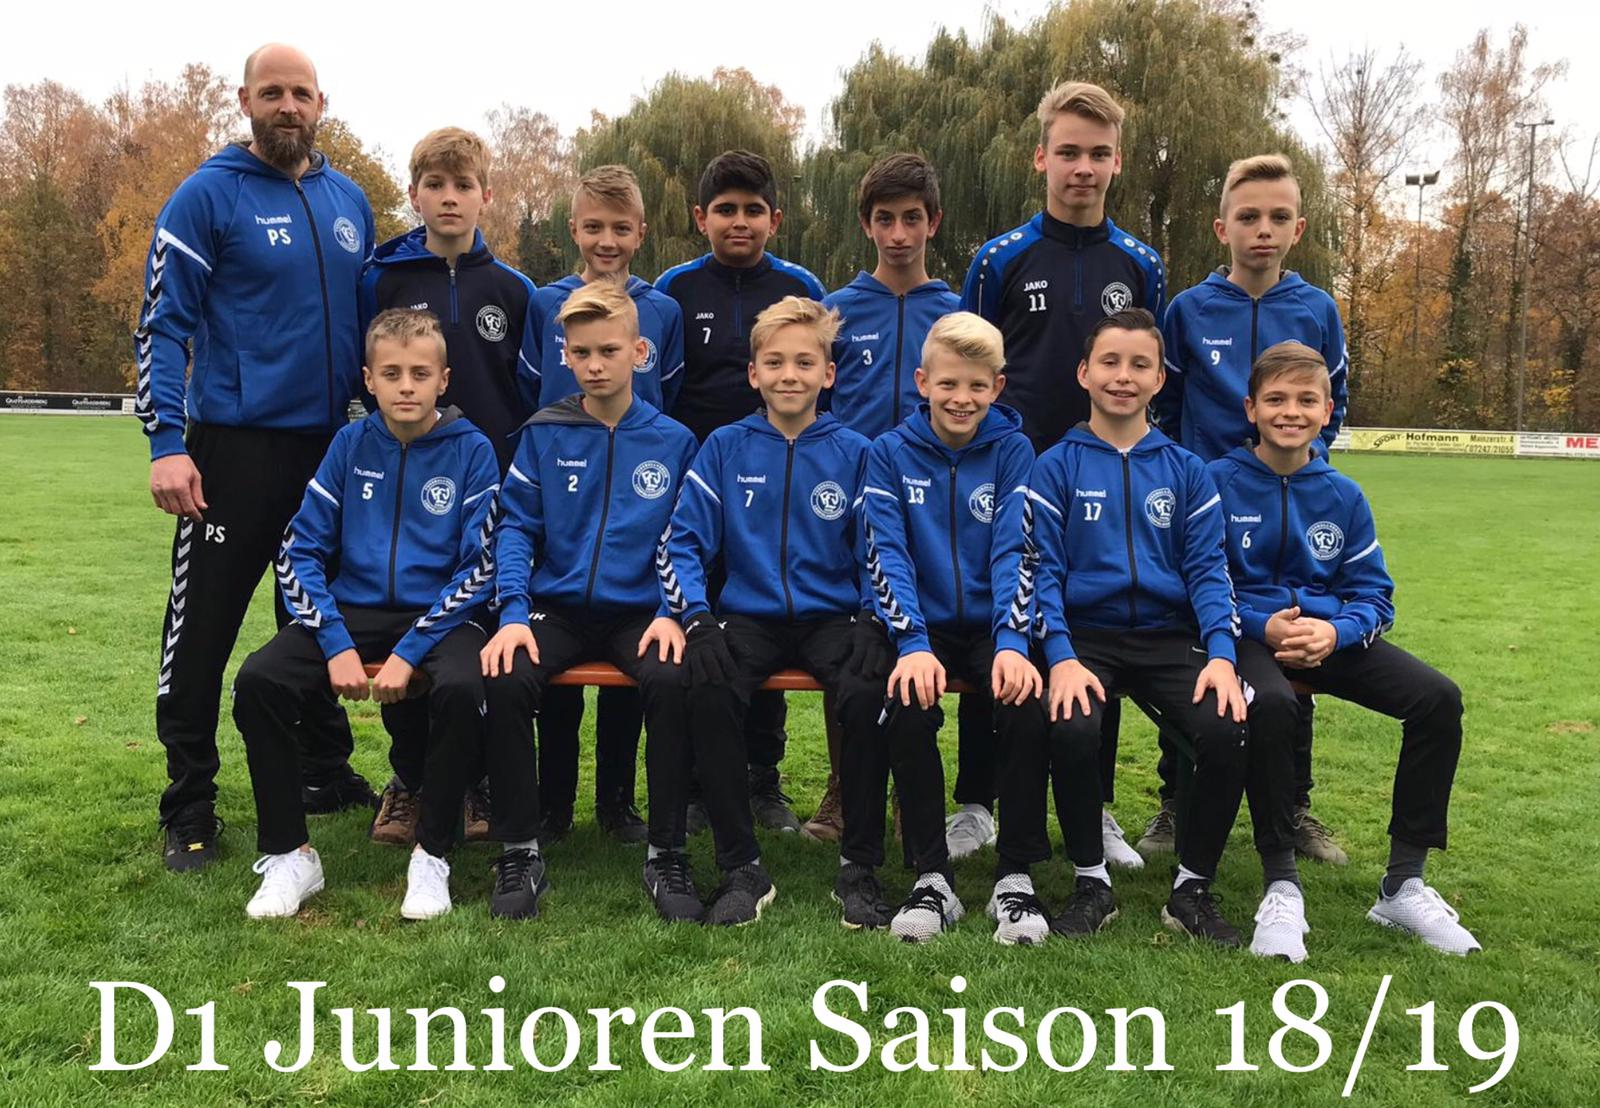 FVL D1-Junioren 18 / 19